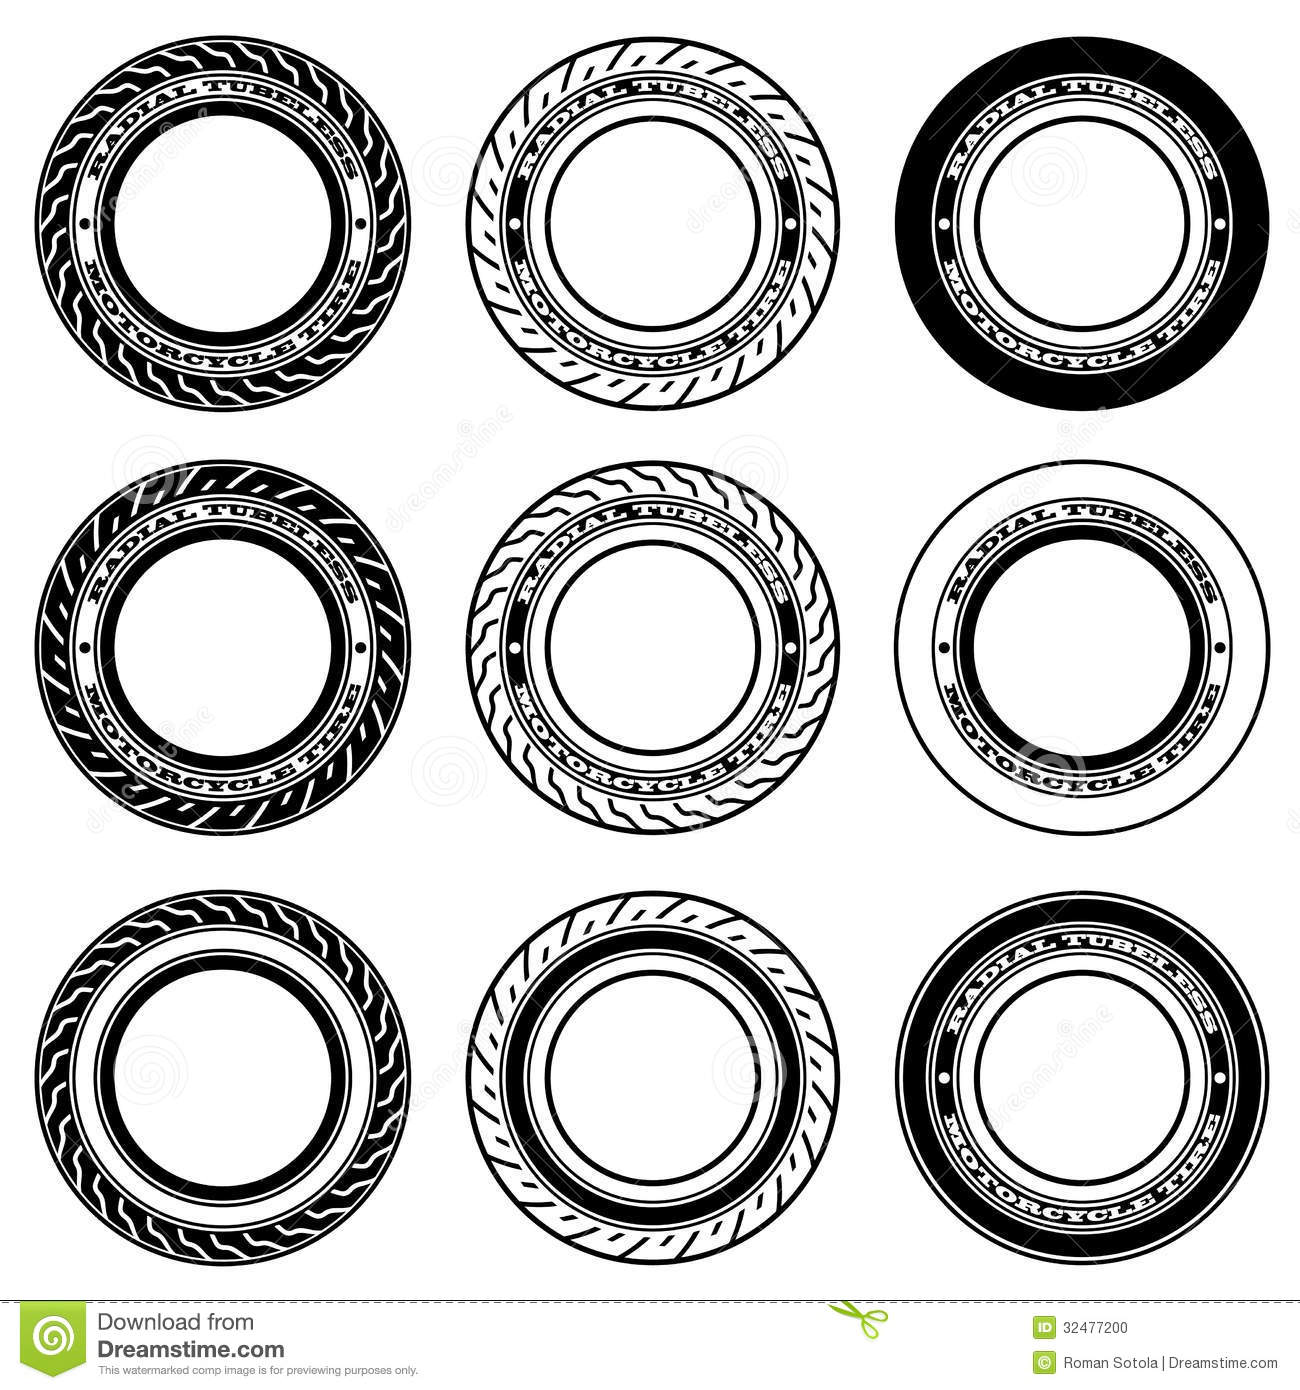 Radial Tubeless Motorcycle Tyre Symbols Stock Vector